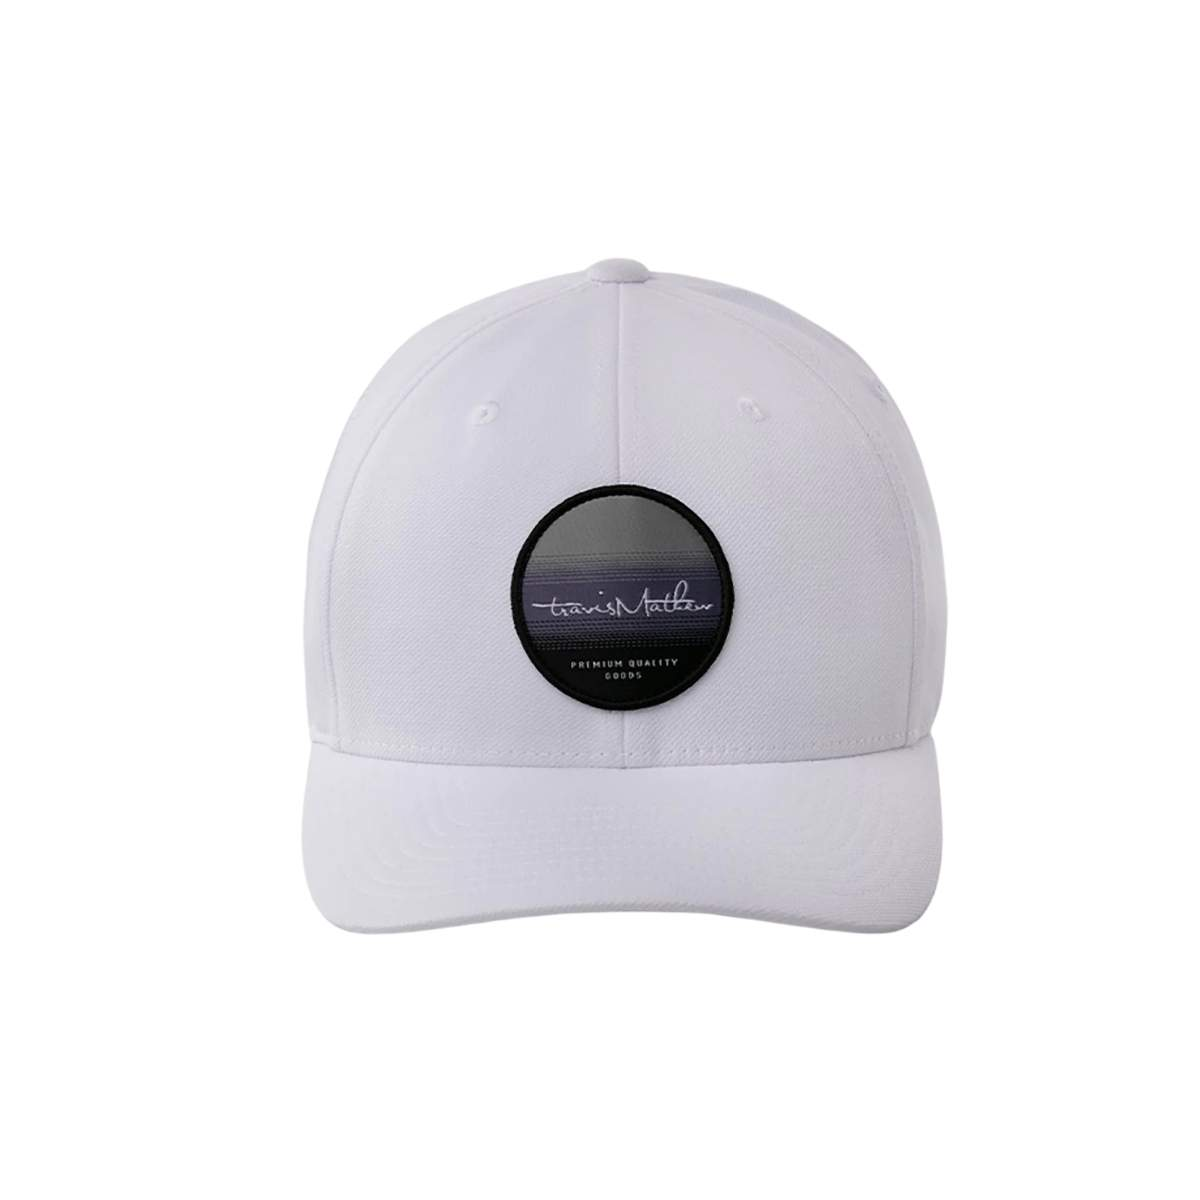 Travis Mathew To The Tropics Fitted Cap